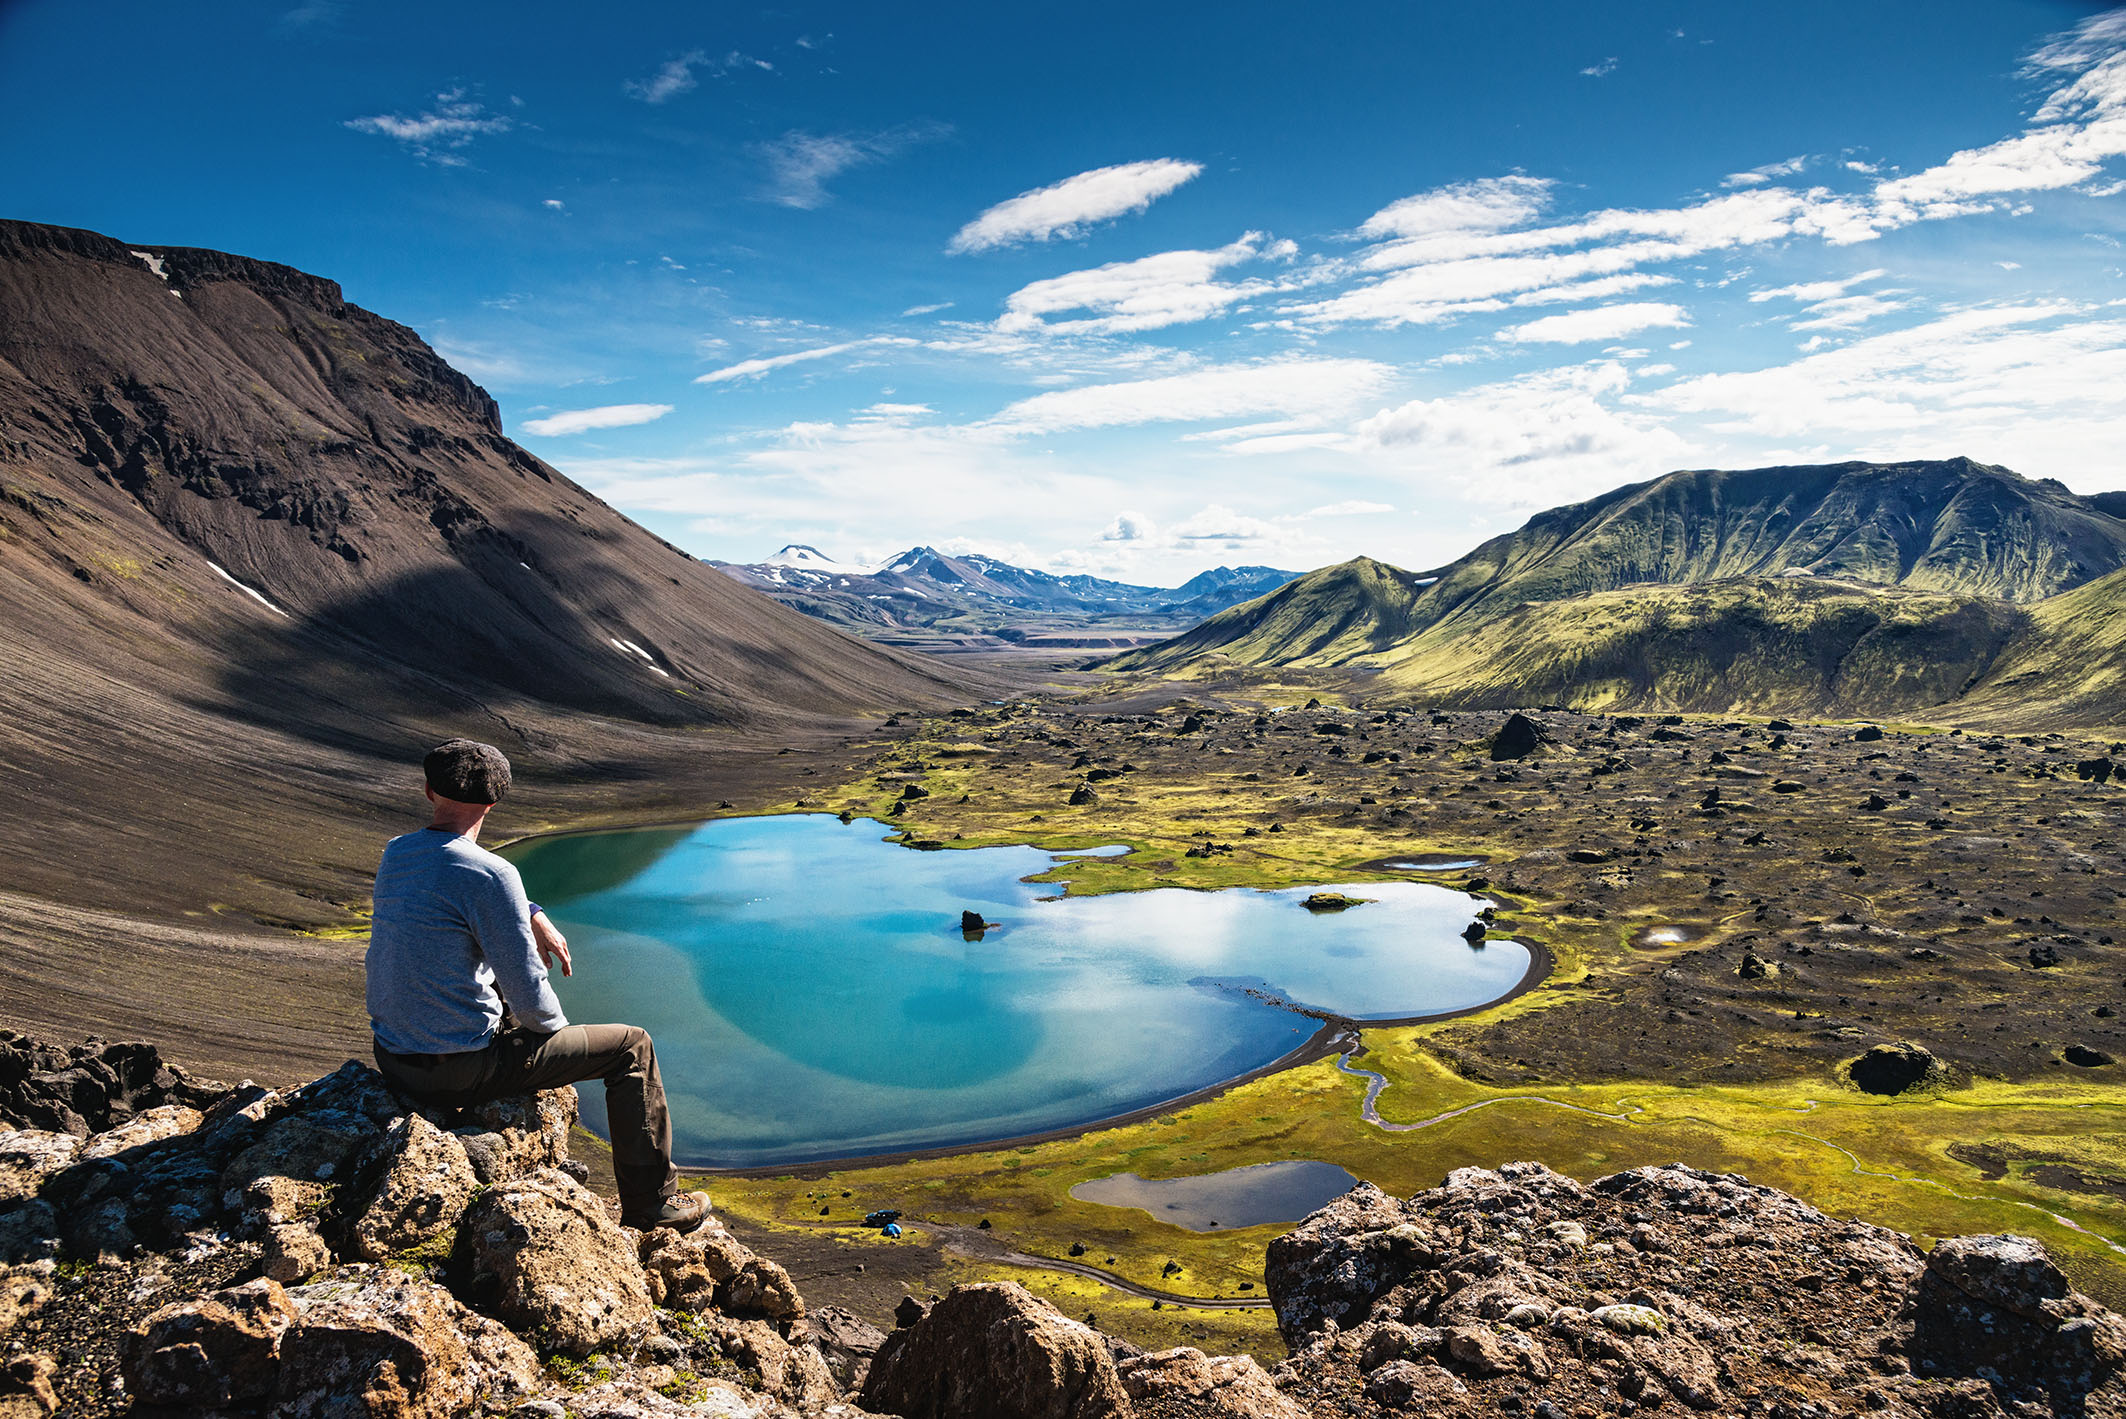 On Assignment for Katla Travel